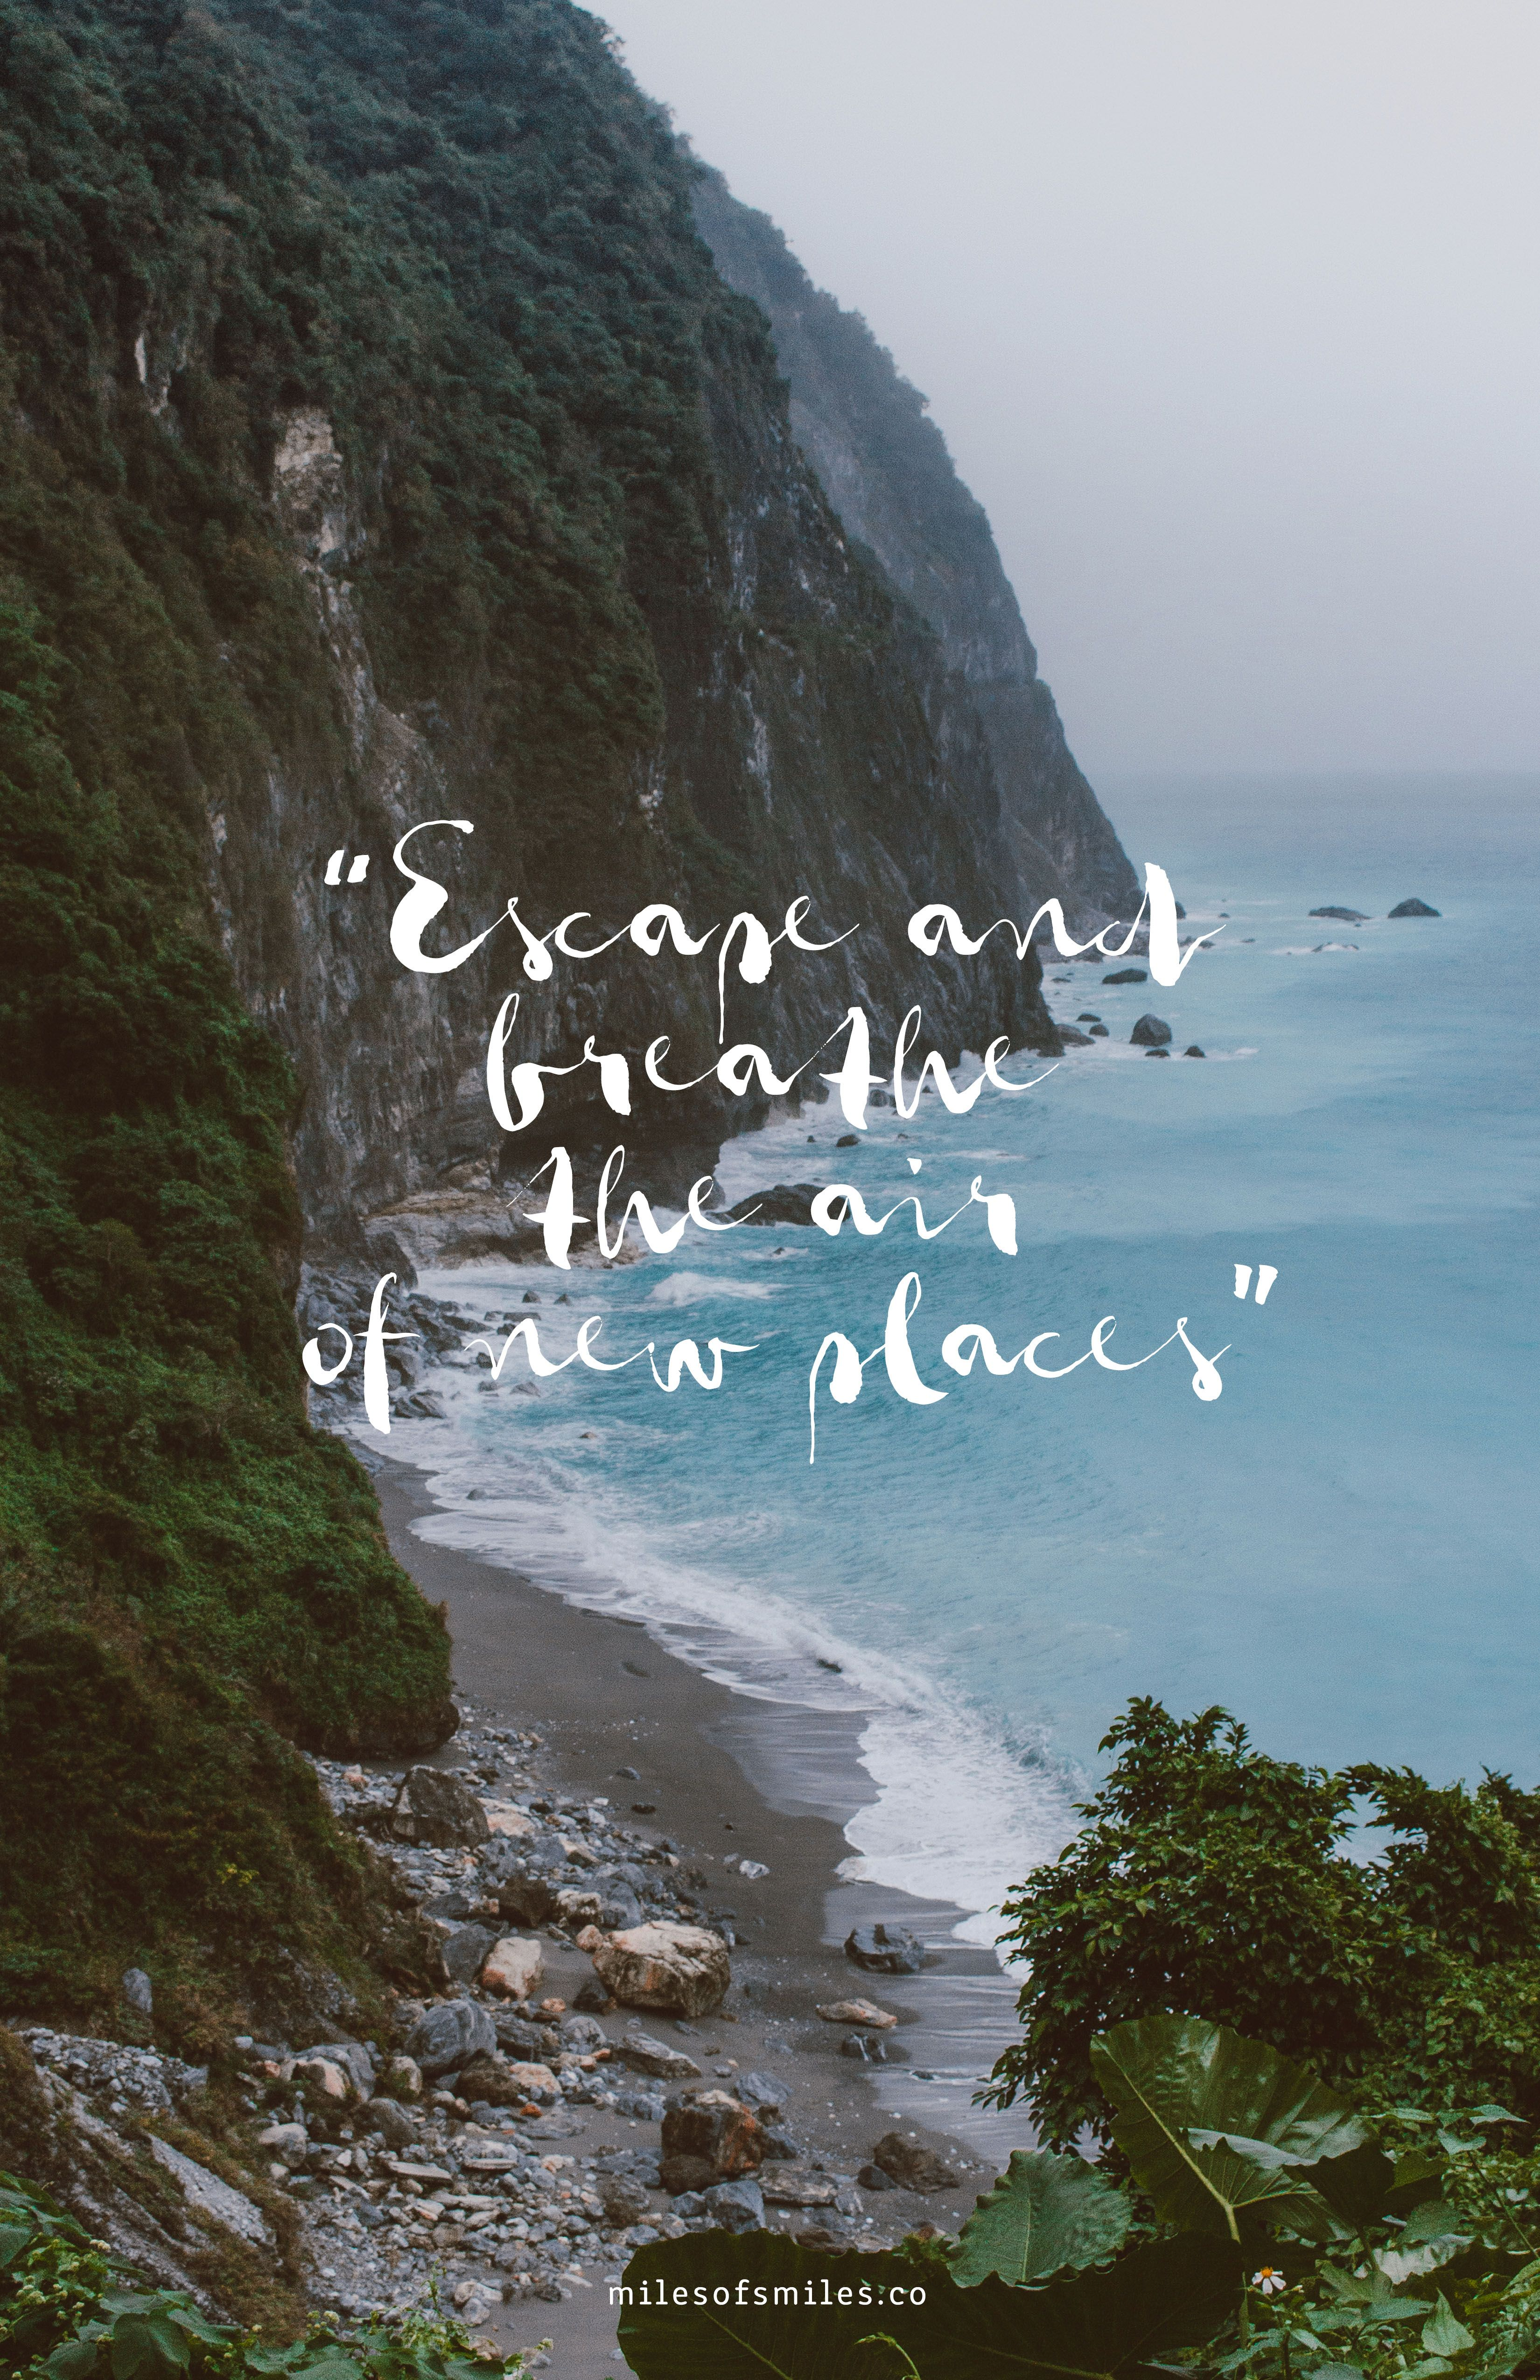 17 Travel Quotes That Will Inspire Your Next Adventure   Miles of Smiles